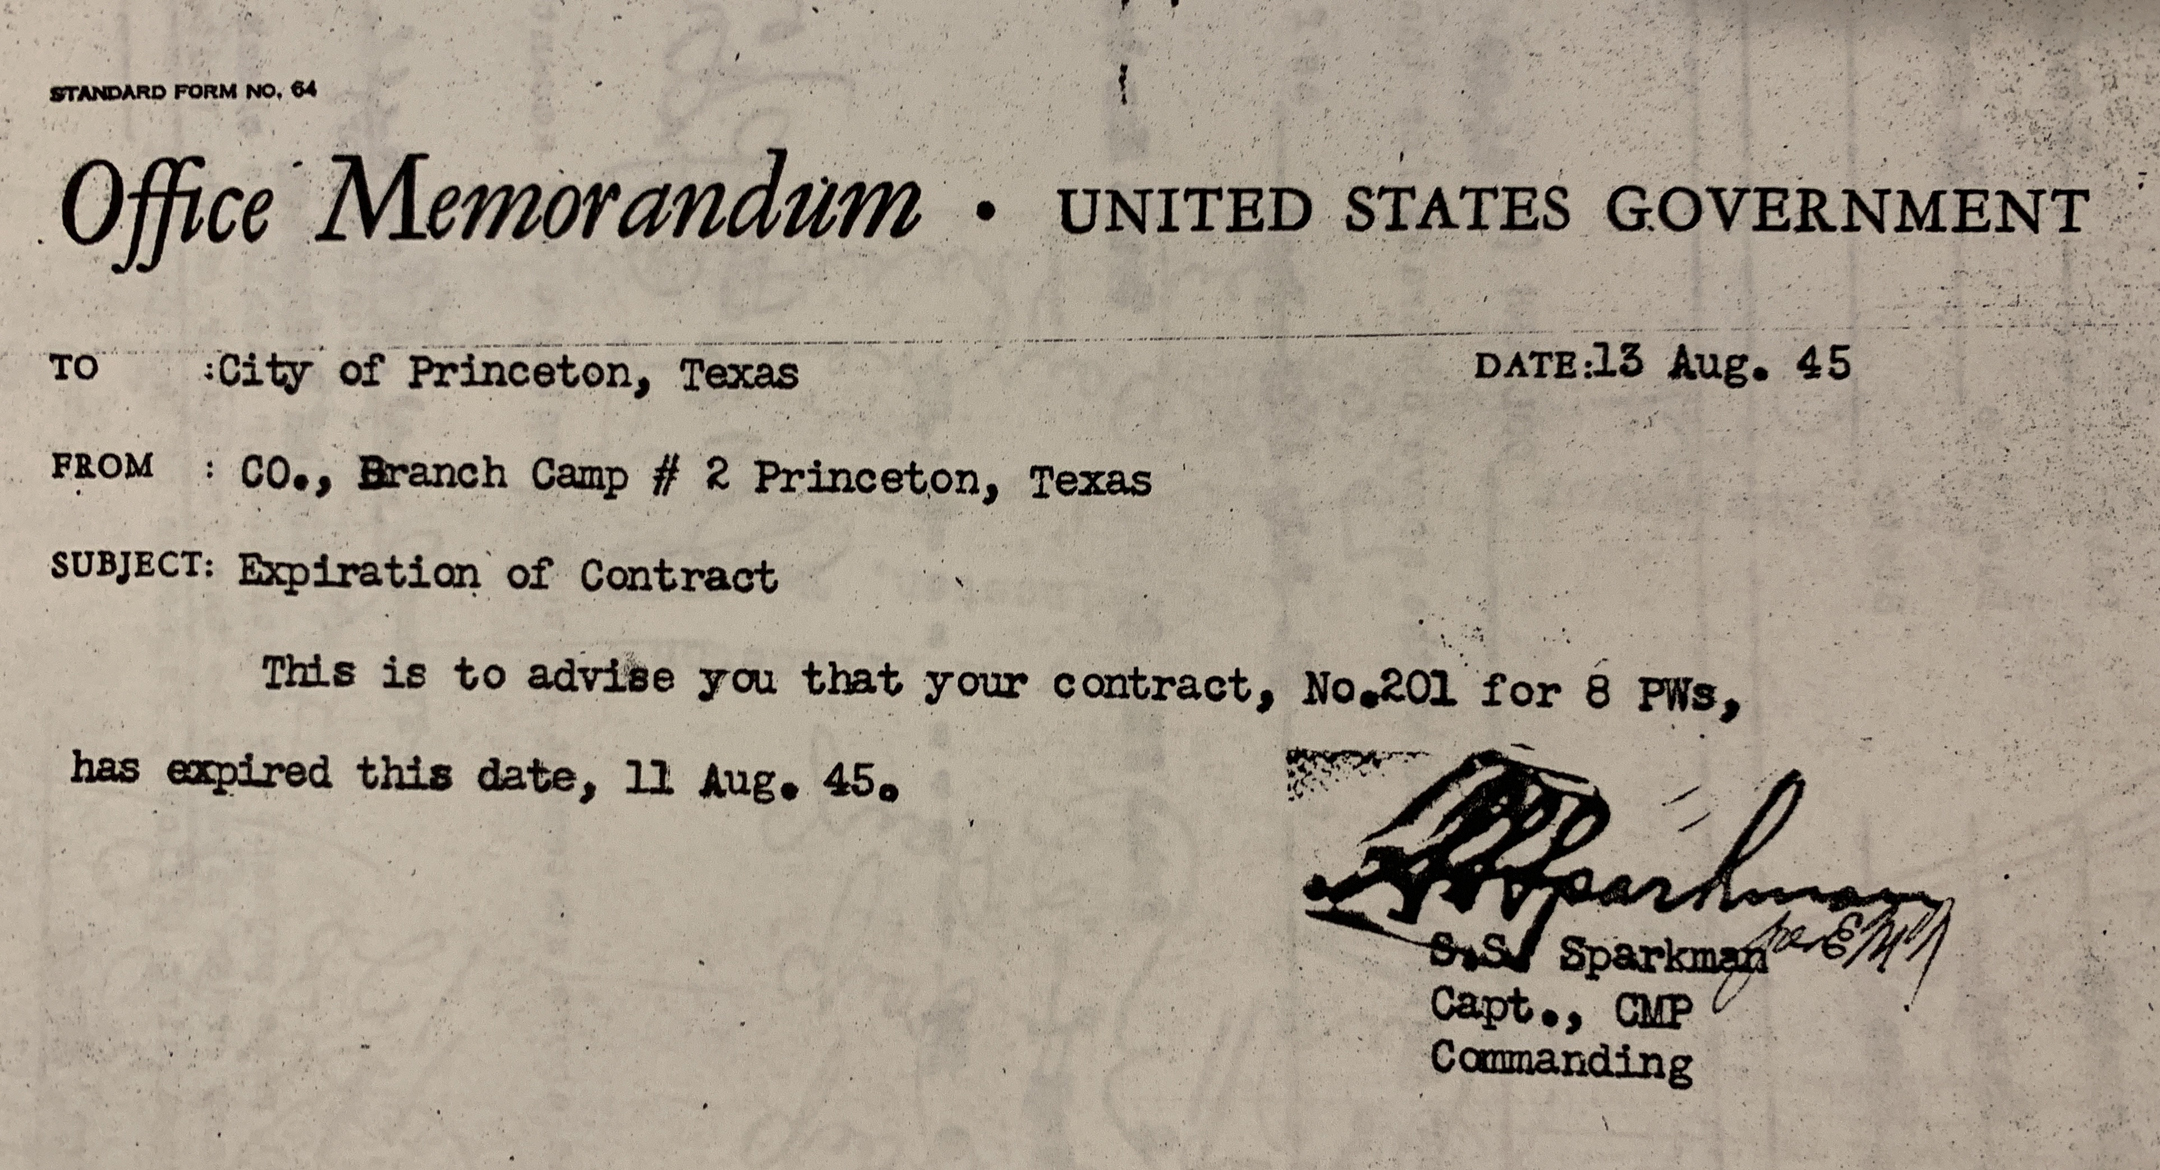 This document shows the U.S. government was under contract to house a prisoner of war camp in Princeton, TX, which was designated as Branch Camp #2. The contract expired in August, 1945.